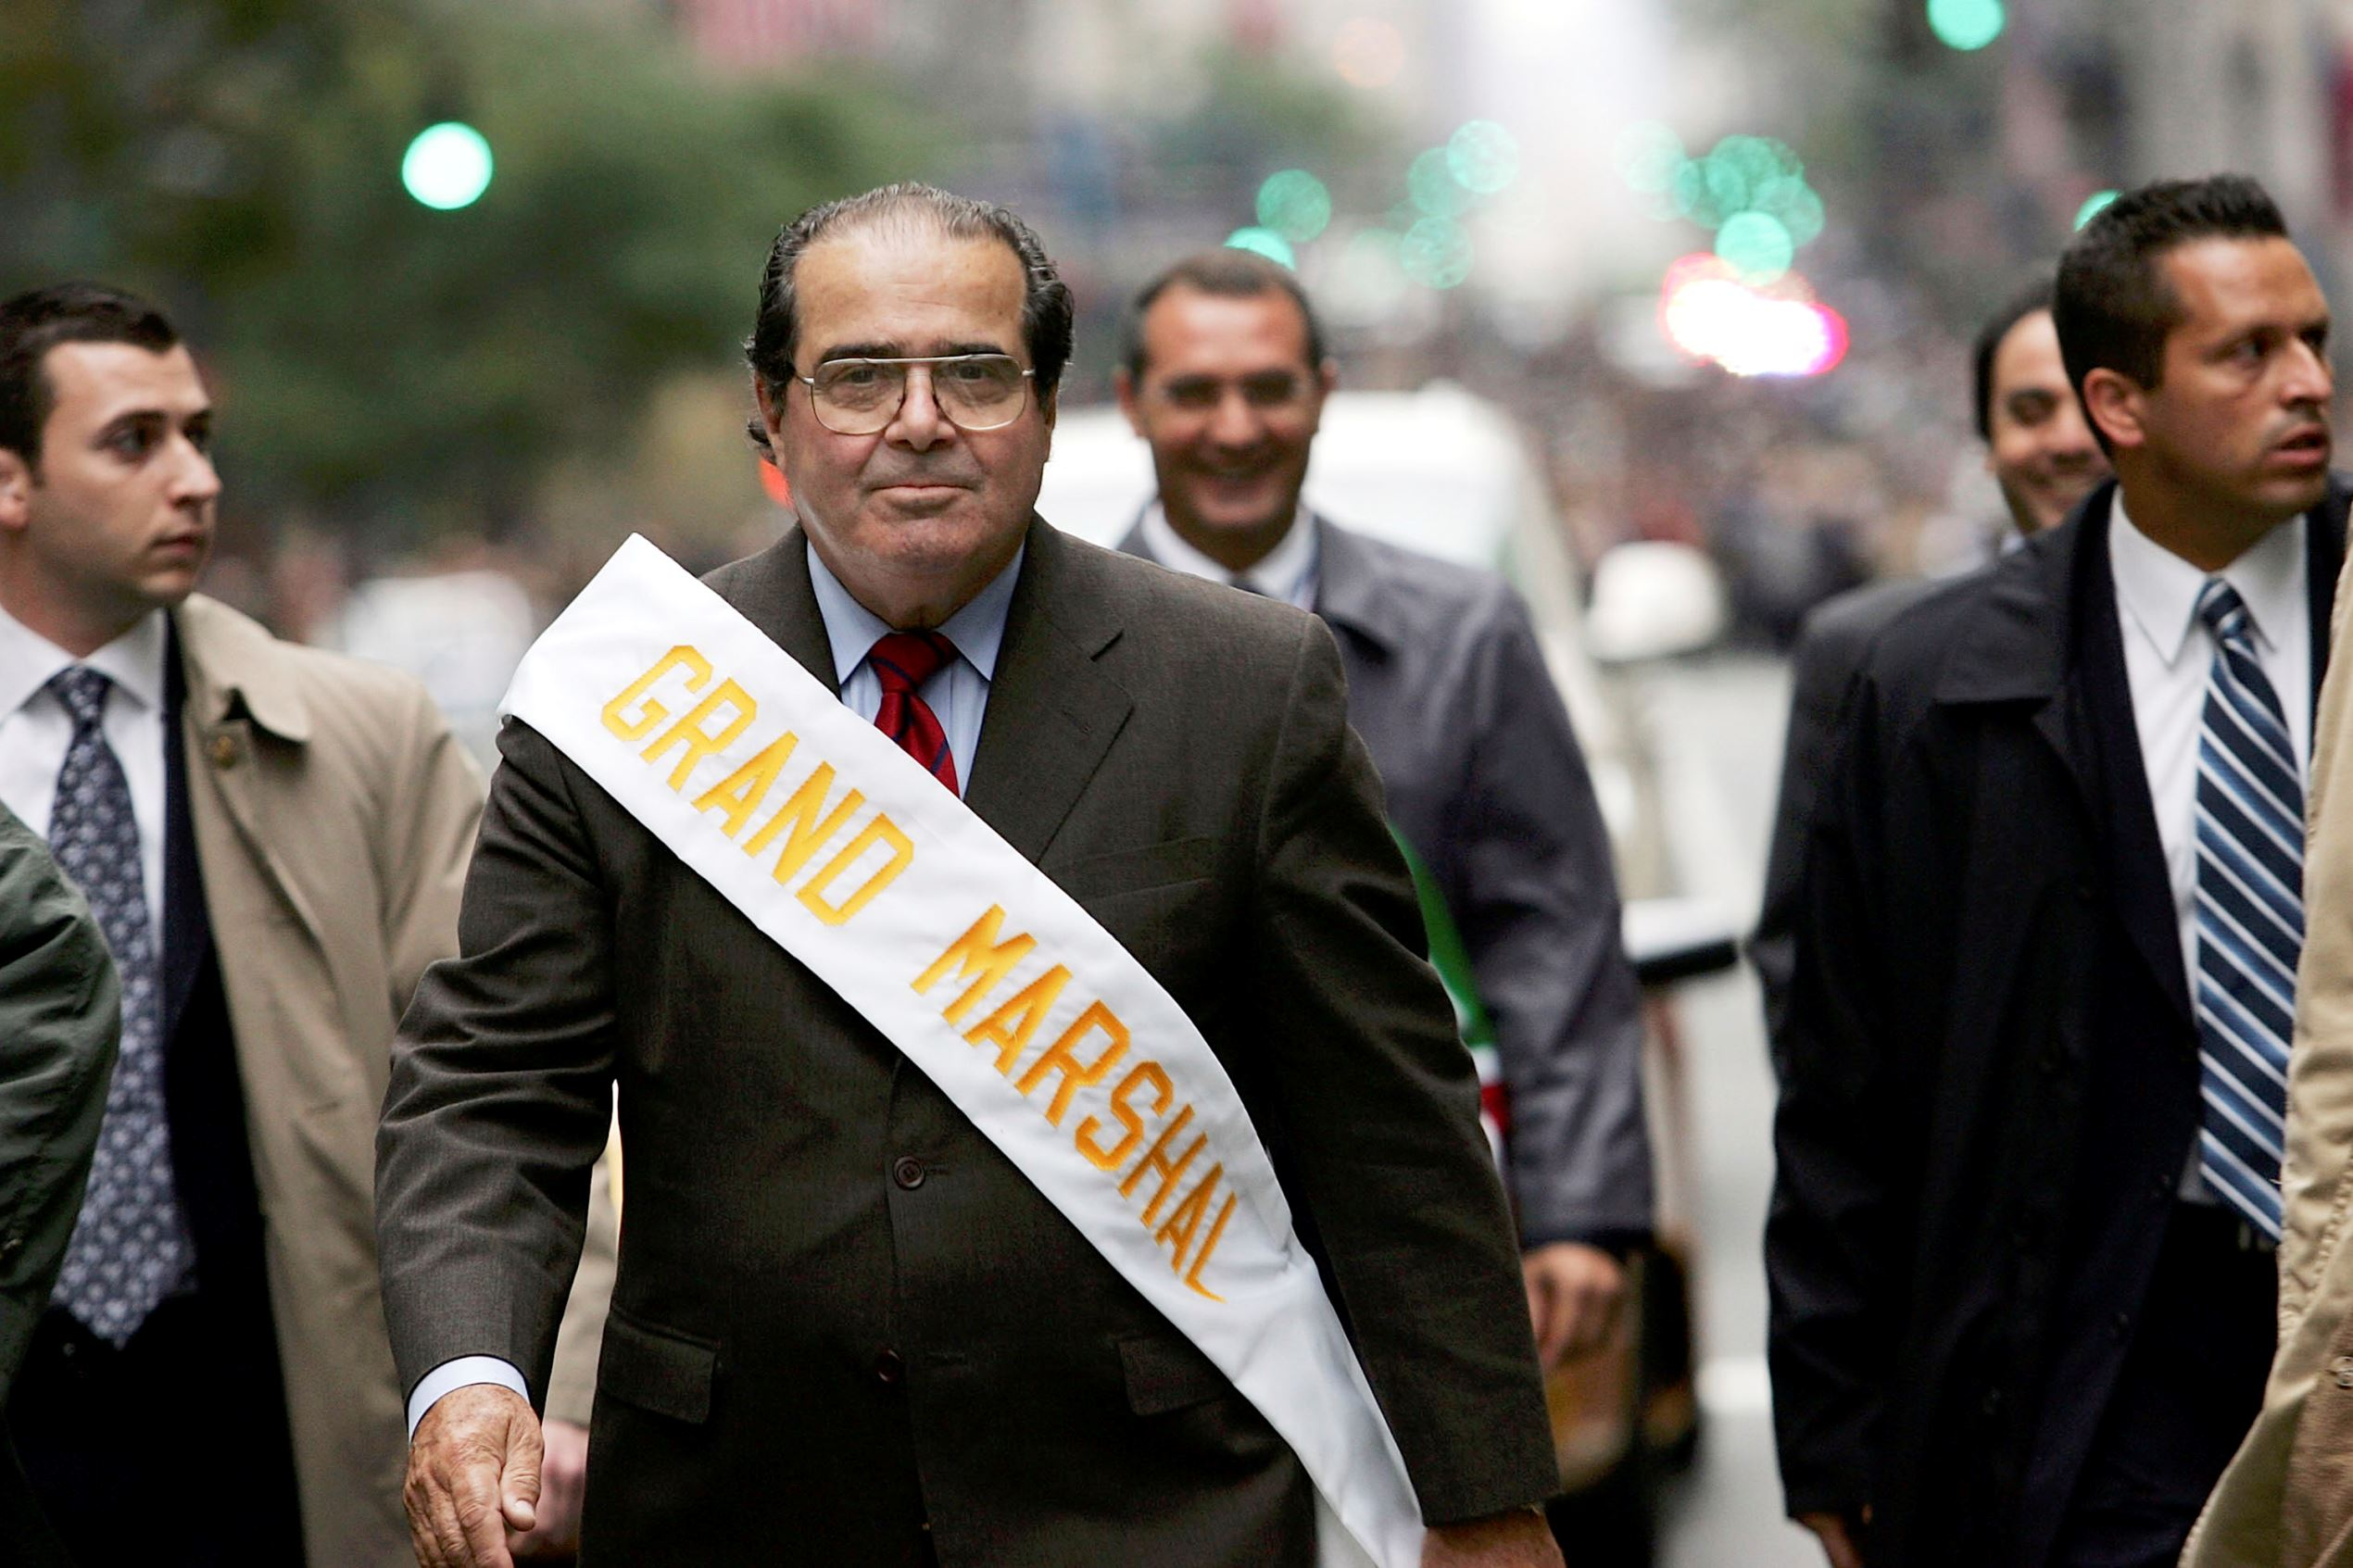 Surrounded by security, Supreme Court Justice Antonin Scalia walks October 10, 2005 in the annual Columbus Day Parade in New York City. This is the 61st Columbus Parade which celebrates both the explorer and Italian cultural influence on America.